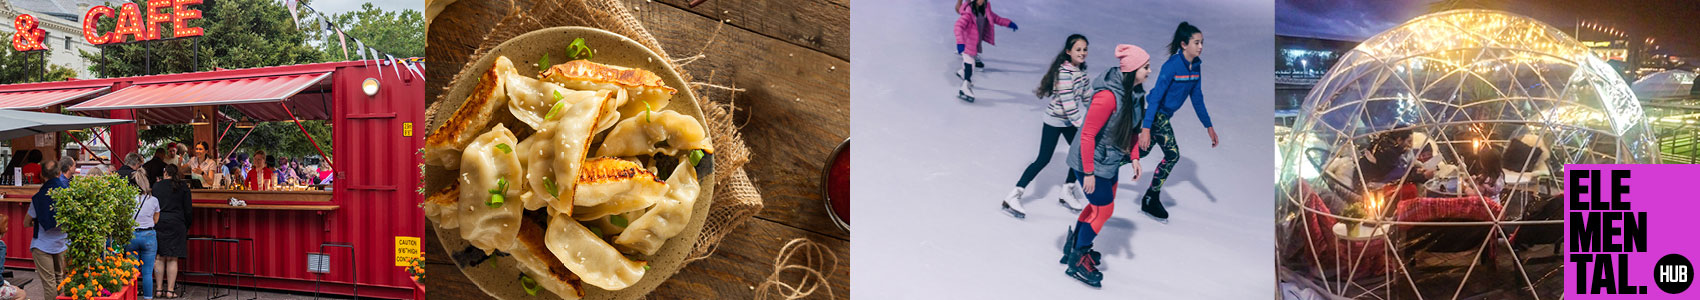 Auckland Comes Out To Eat, Play And Skate